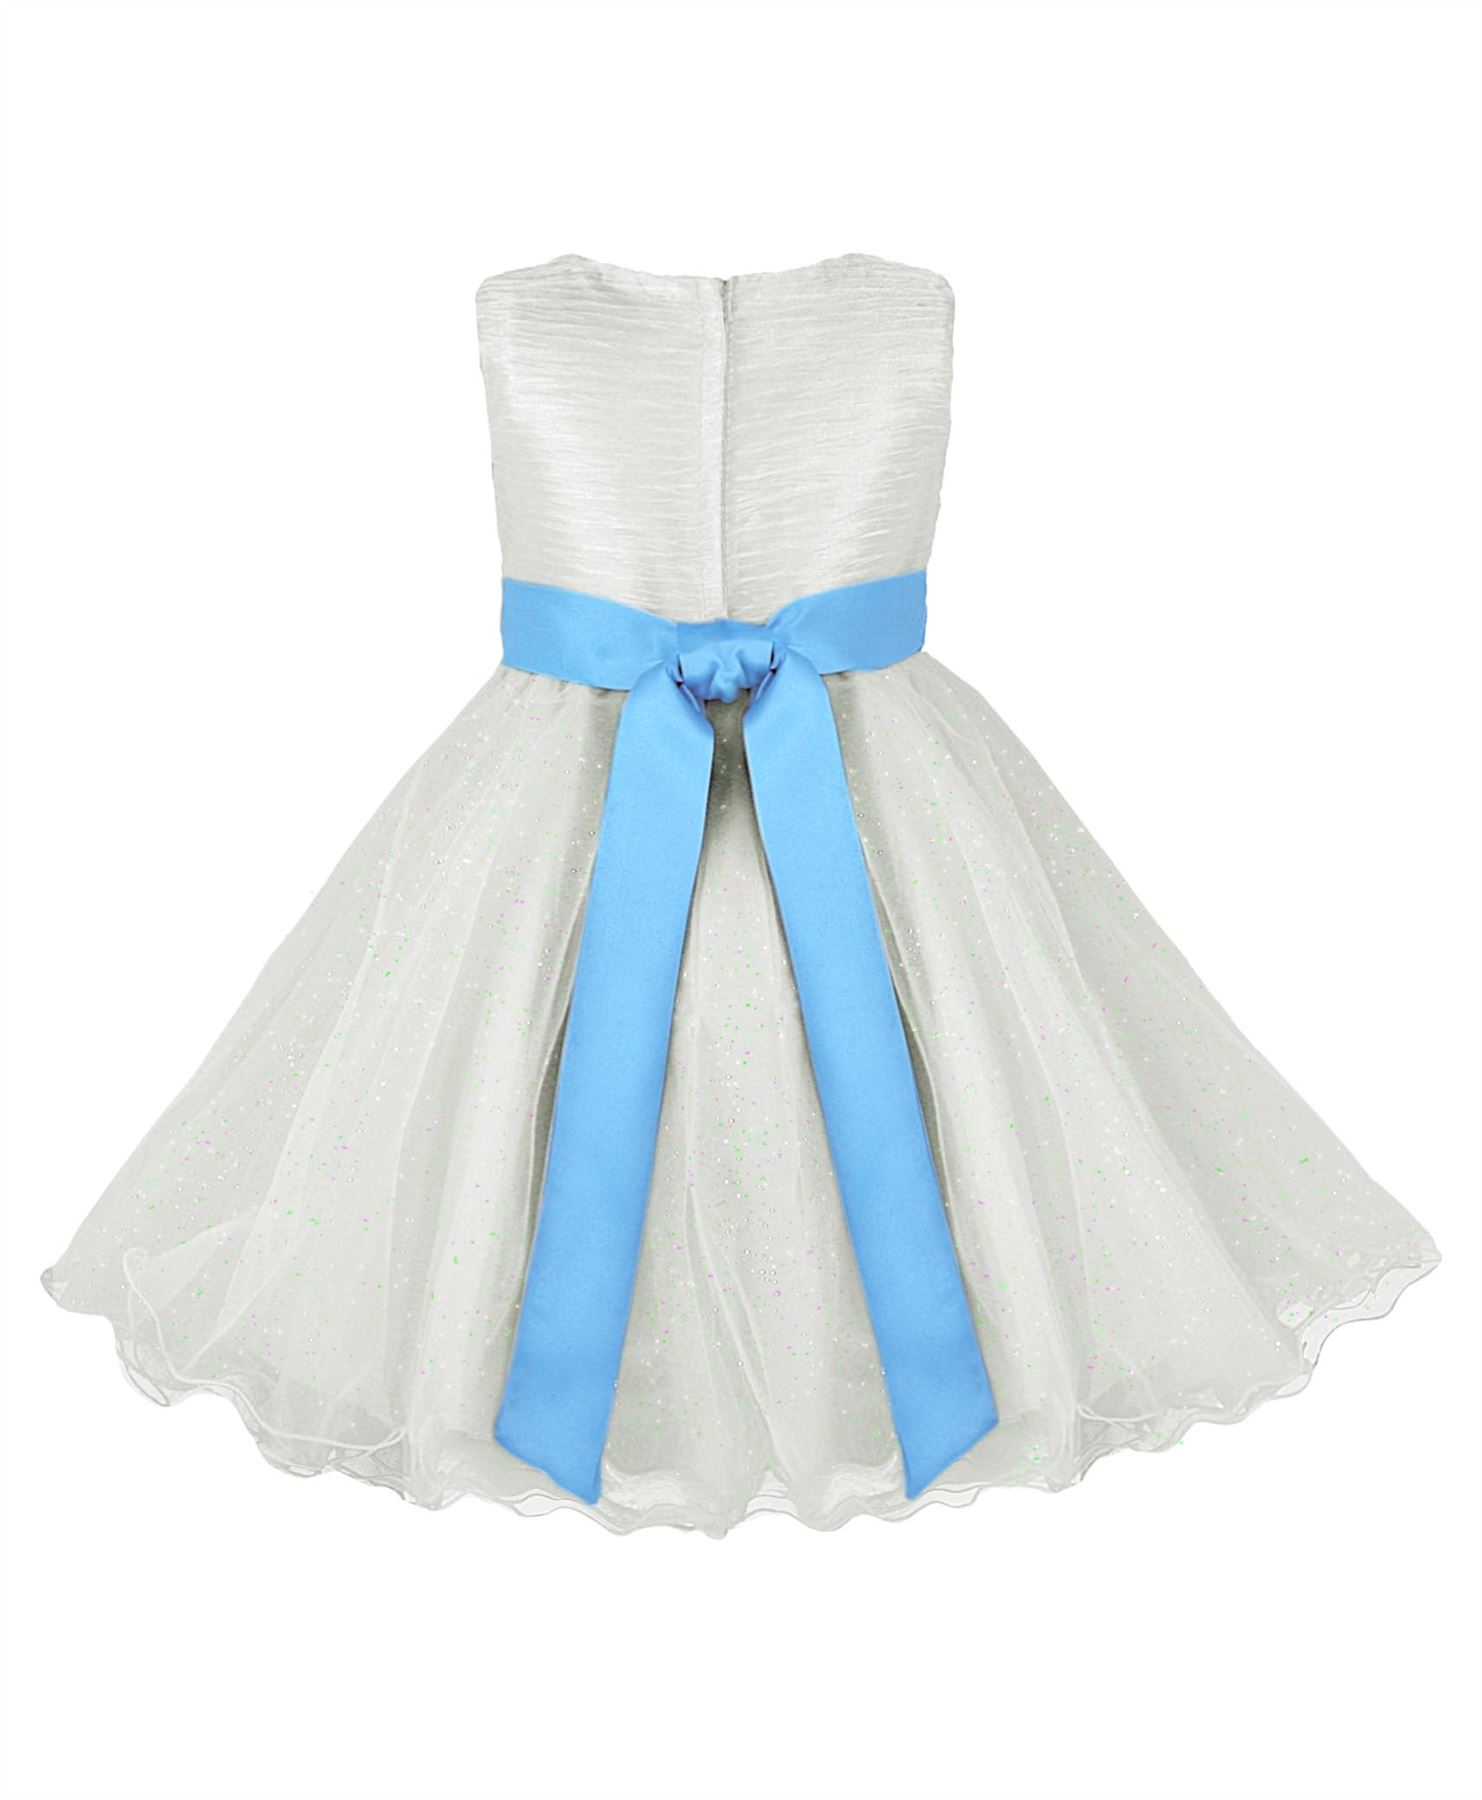 GIRLS TULLE PARTY DRESS BOW DETAIL FLOWER GIRL WEDDING PAGEANT BRIDESMAID 2-12 Y